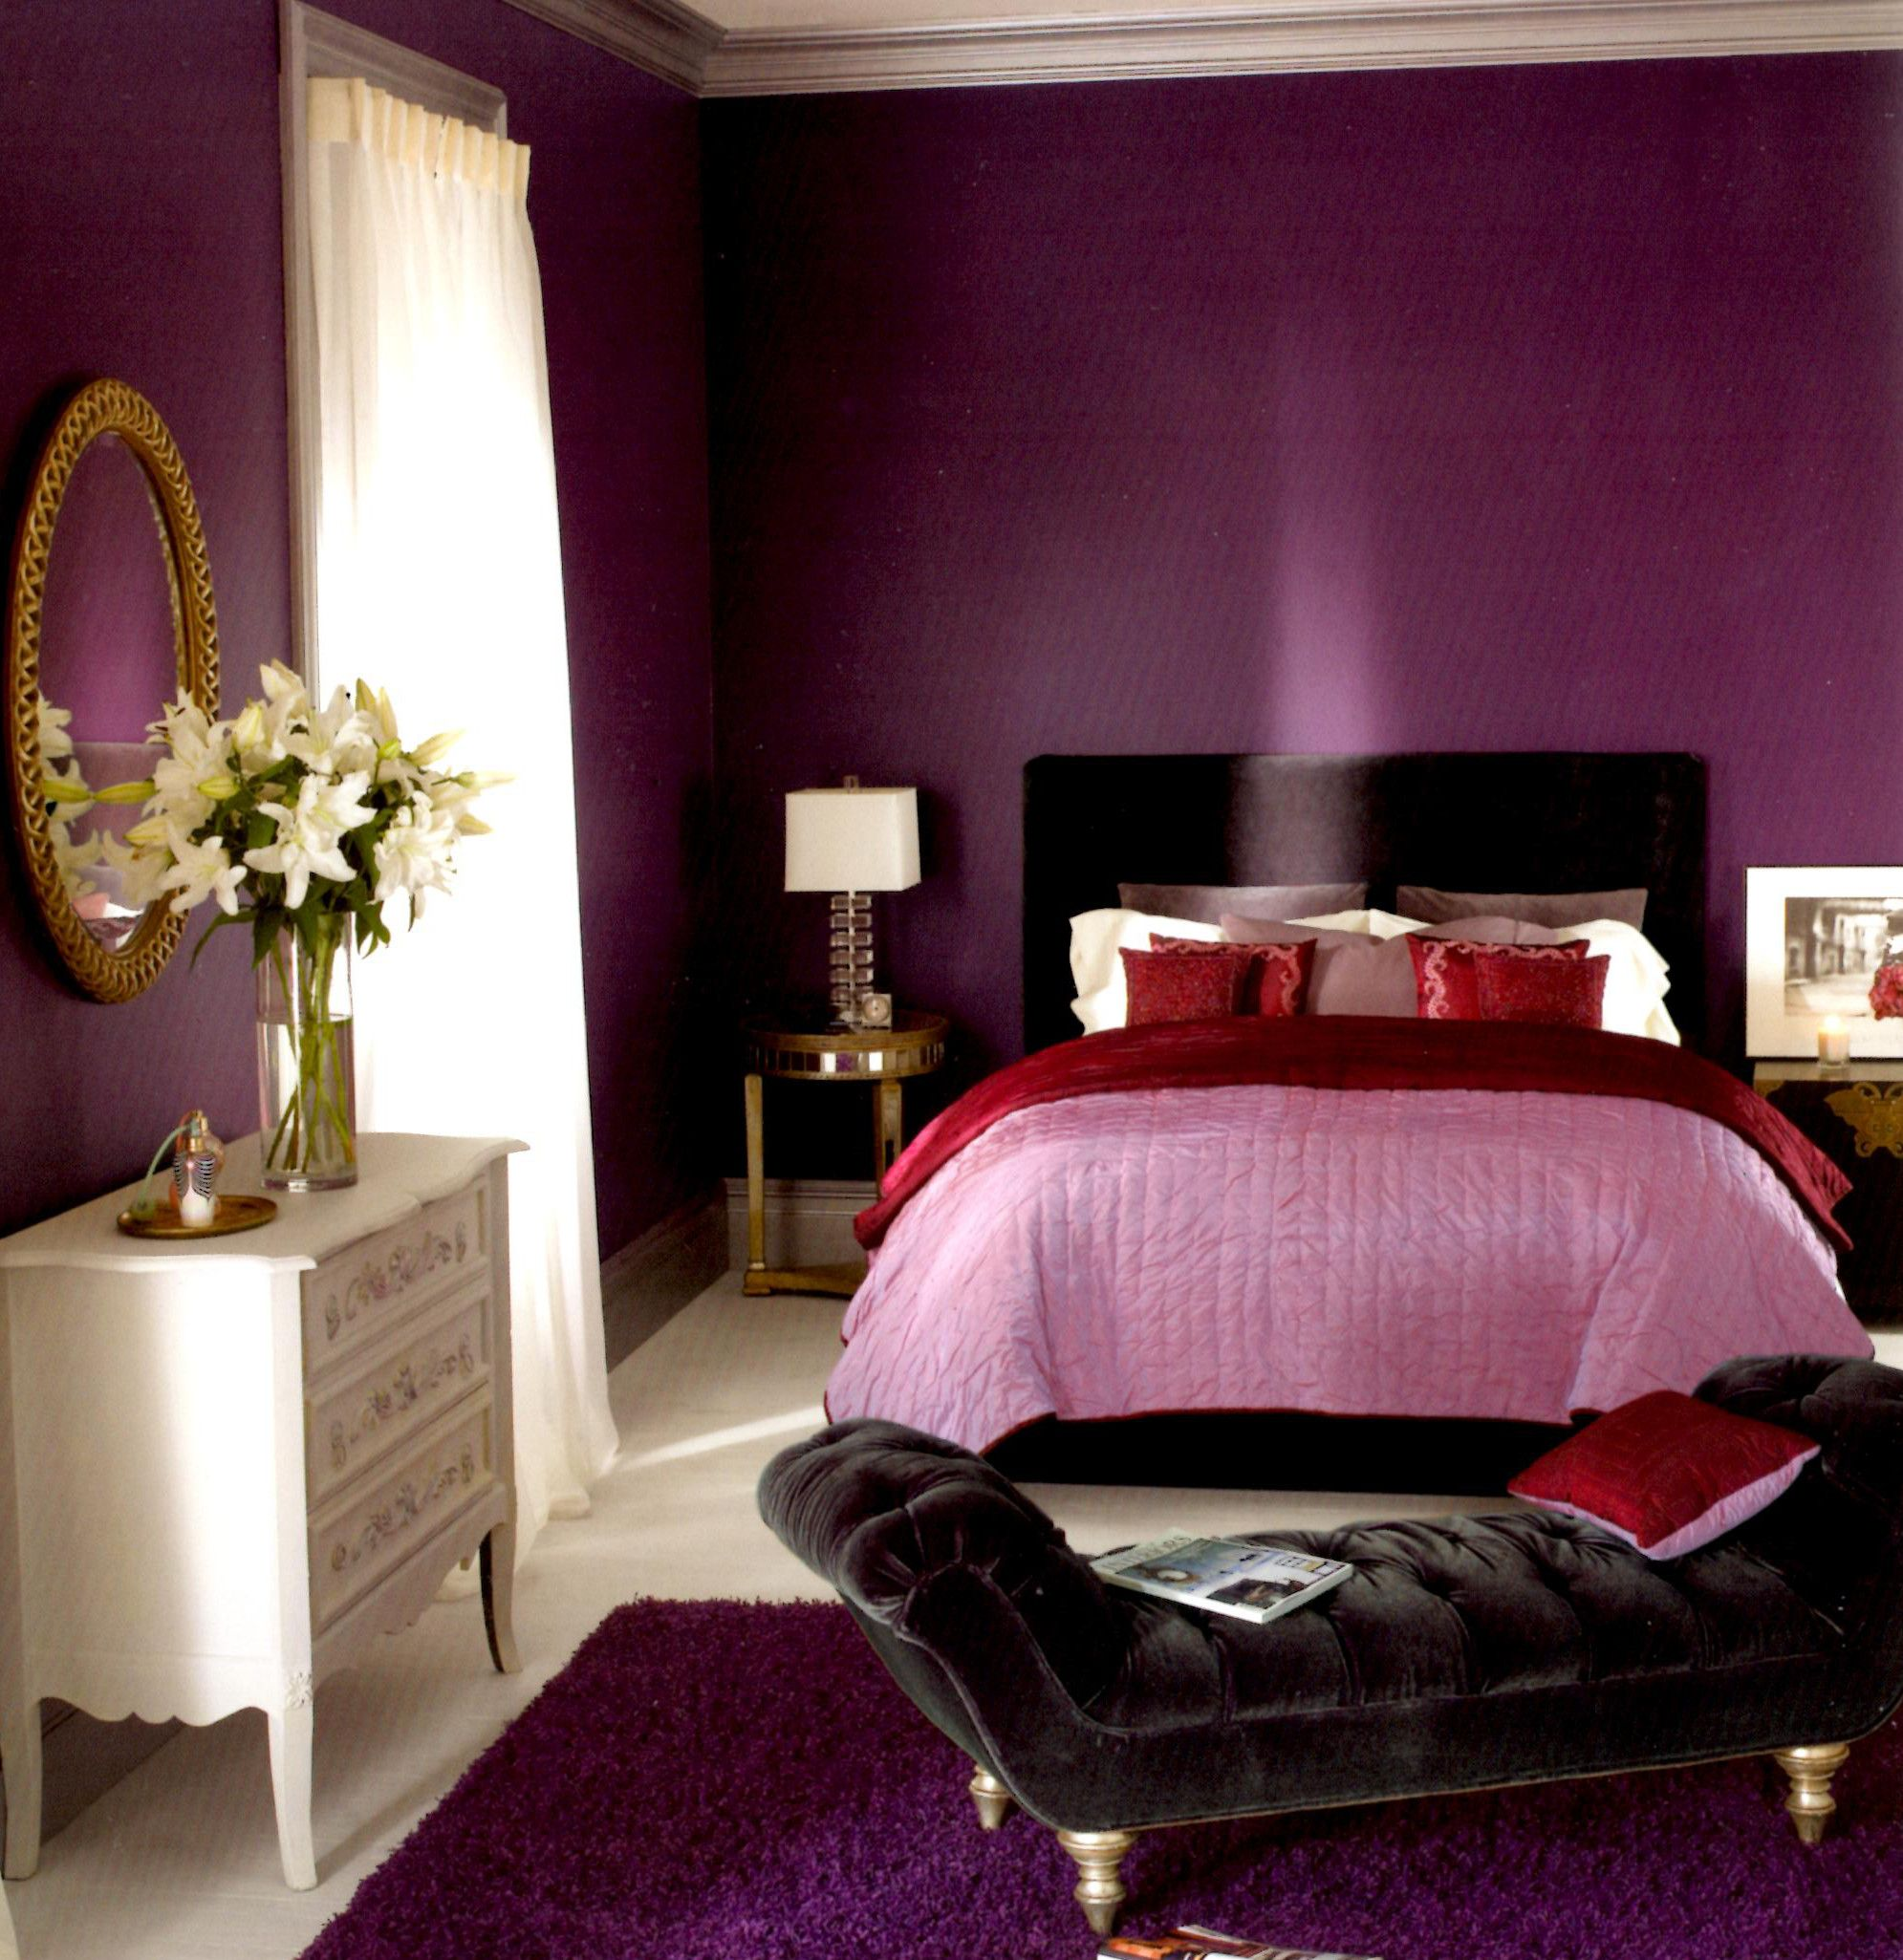 Red bedroom painting ideas - Remarkable Purple Wall Paneling Colors As Smart Bedroom Paint Ideas In Teenage Bedroom Decor Also White